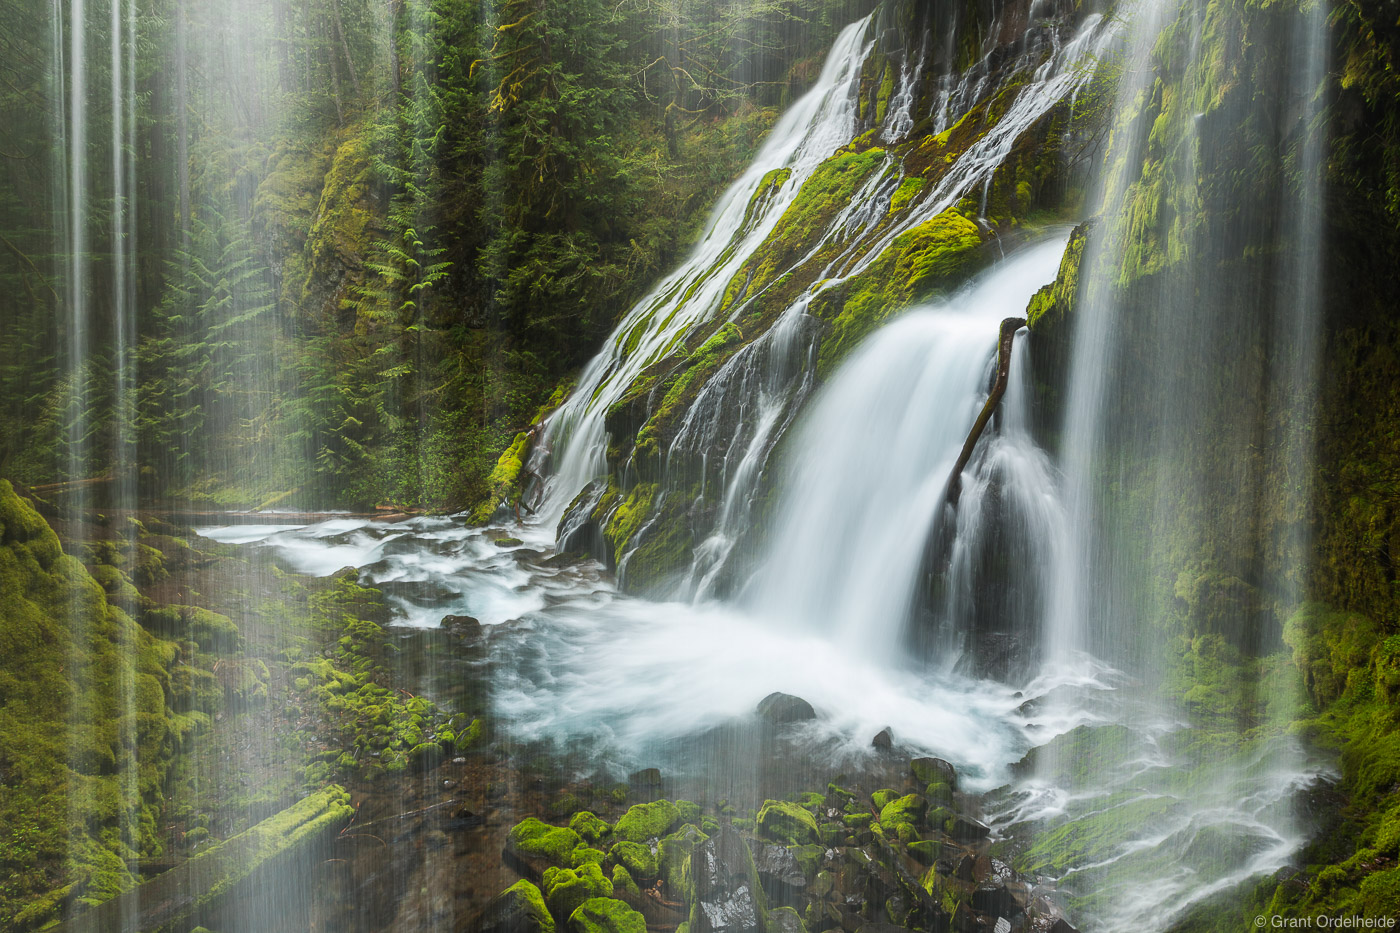 behind, panther, creek, falls, carson, washington, Columbia, river, gorge, state